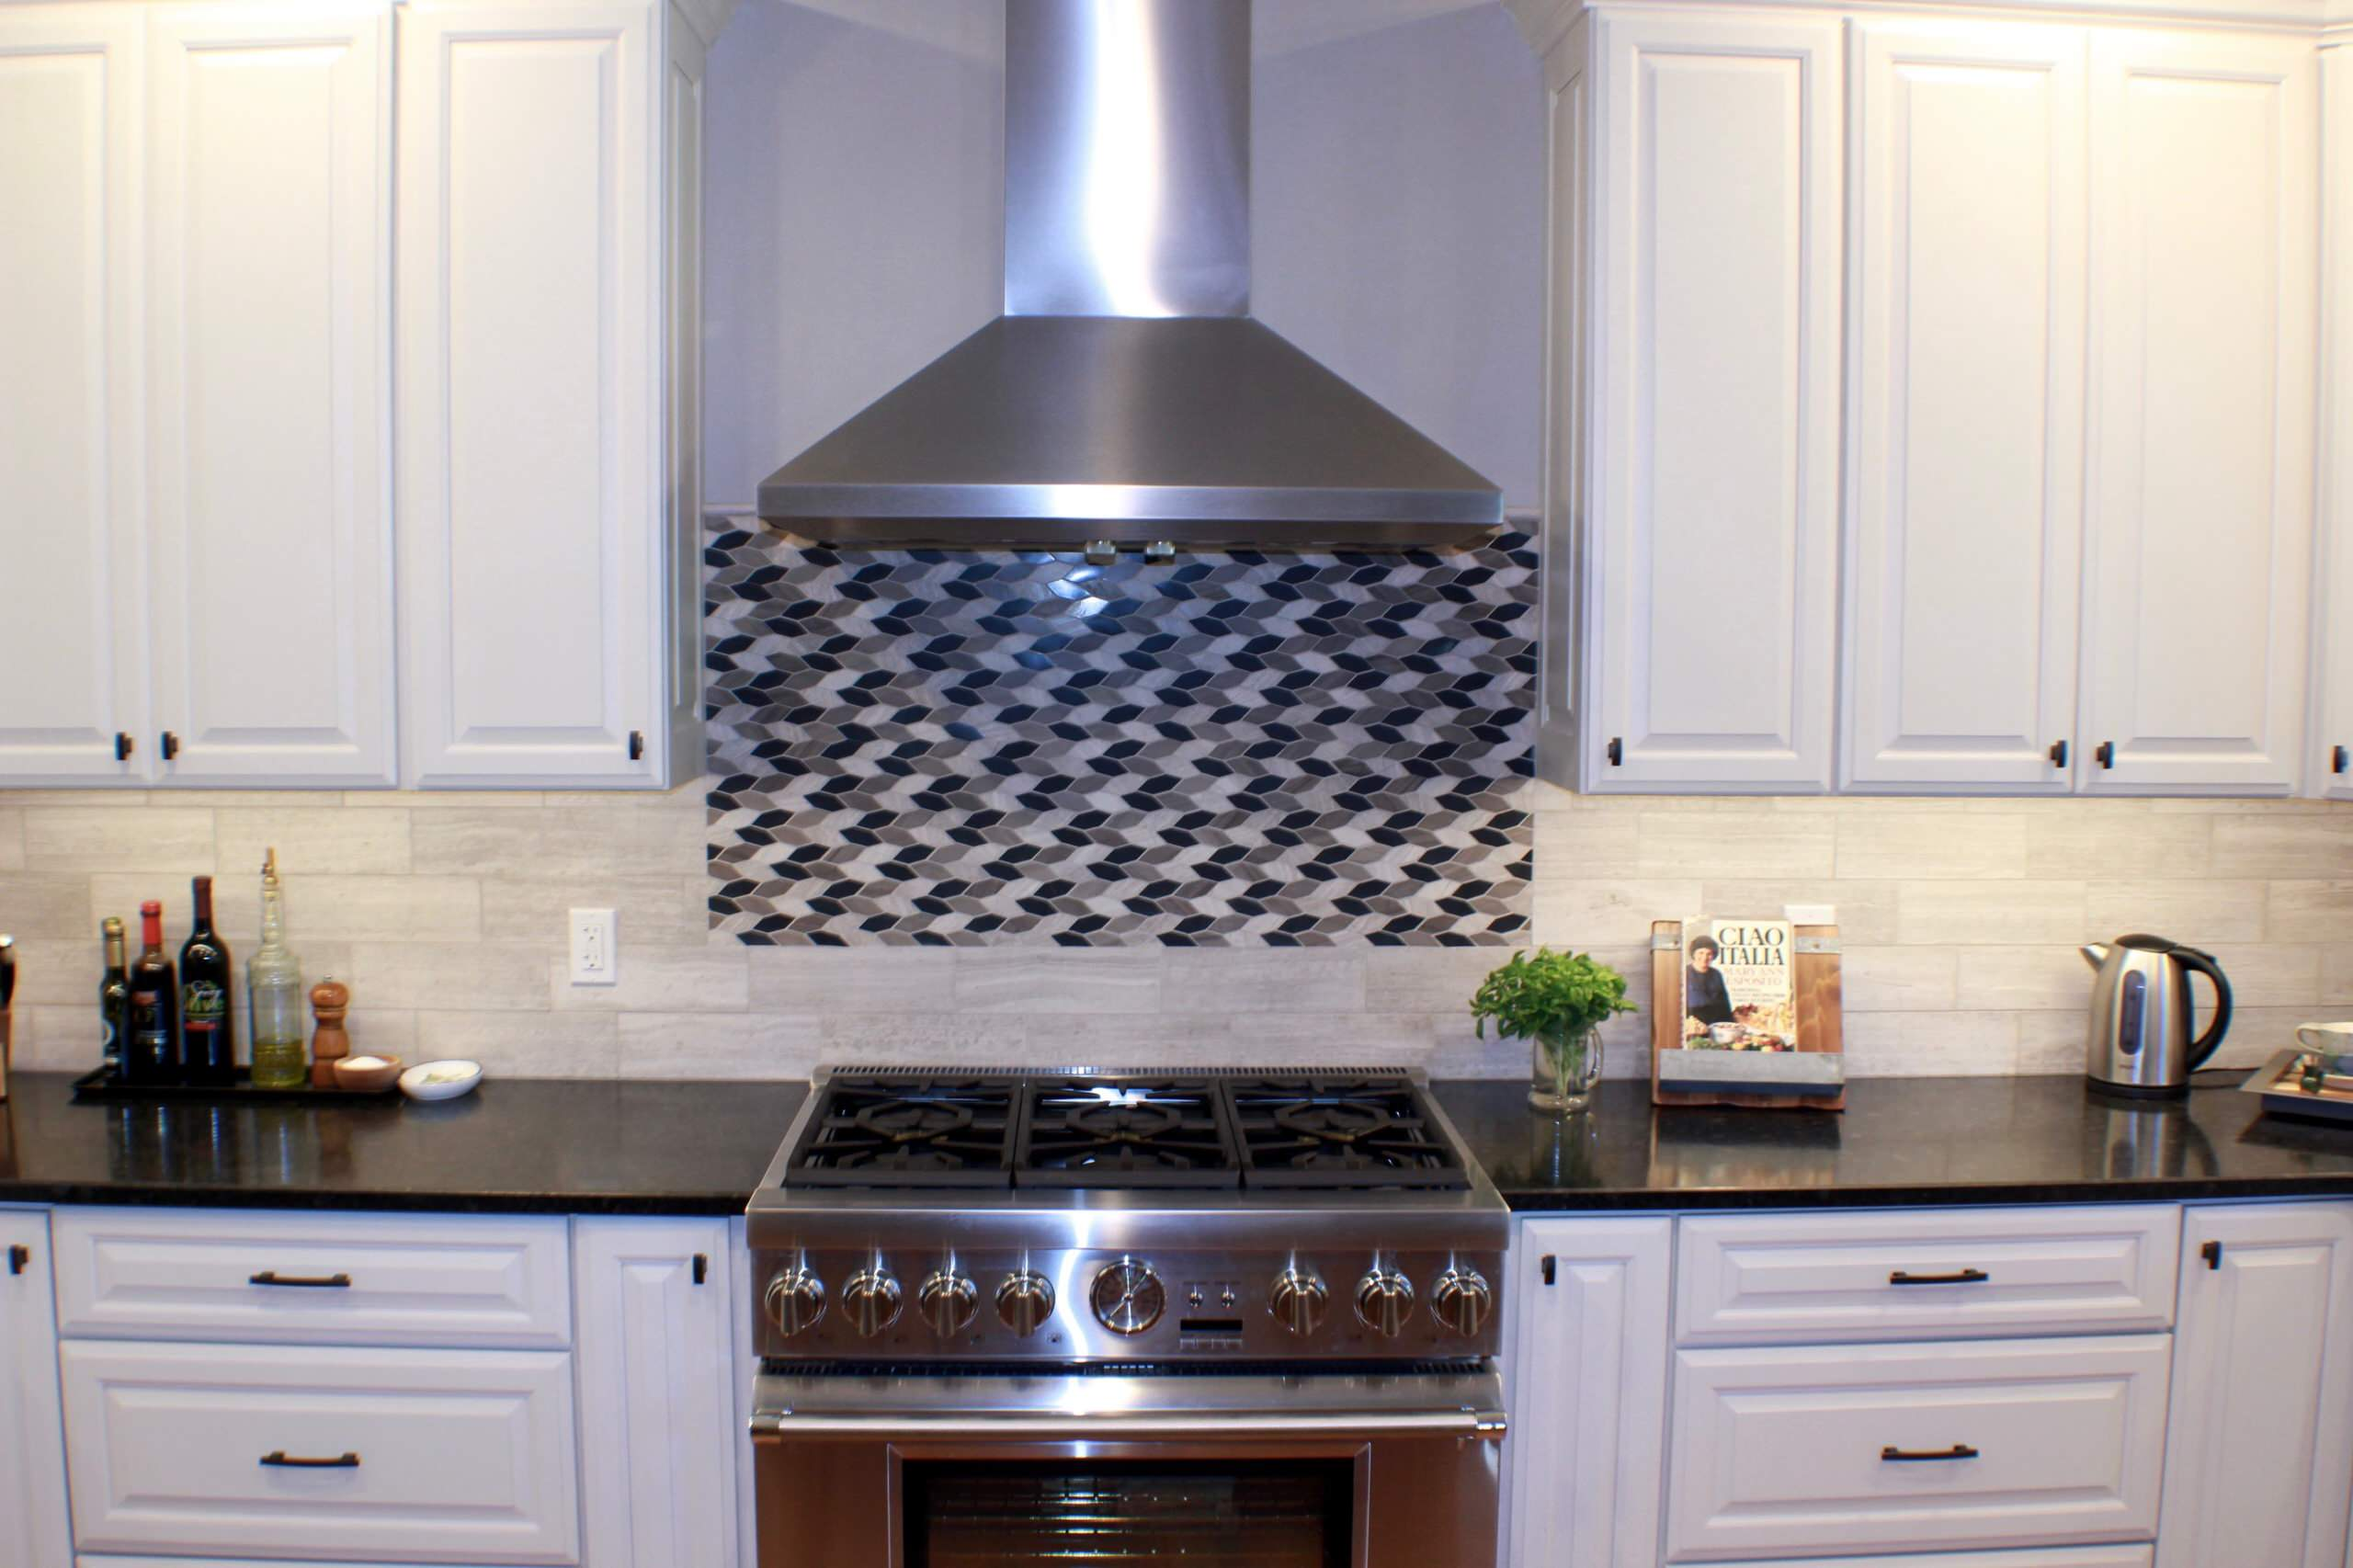 Custom Backsplash Gallerybla